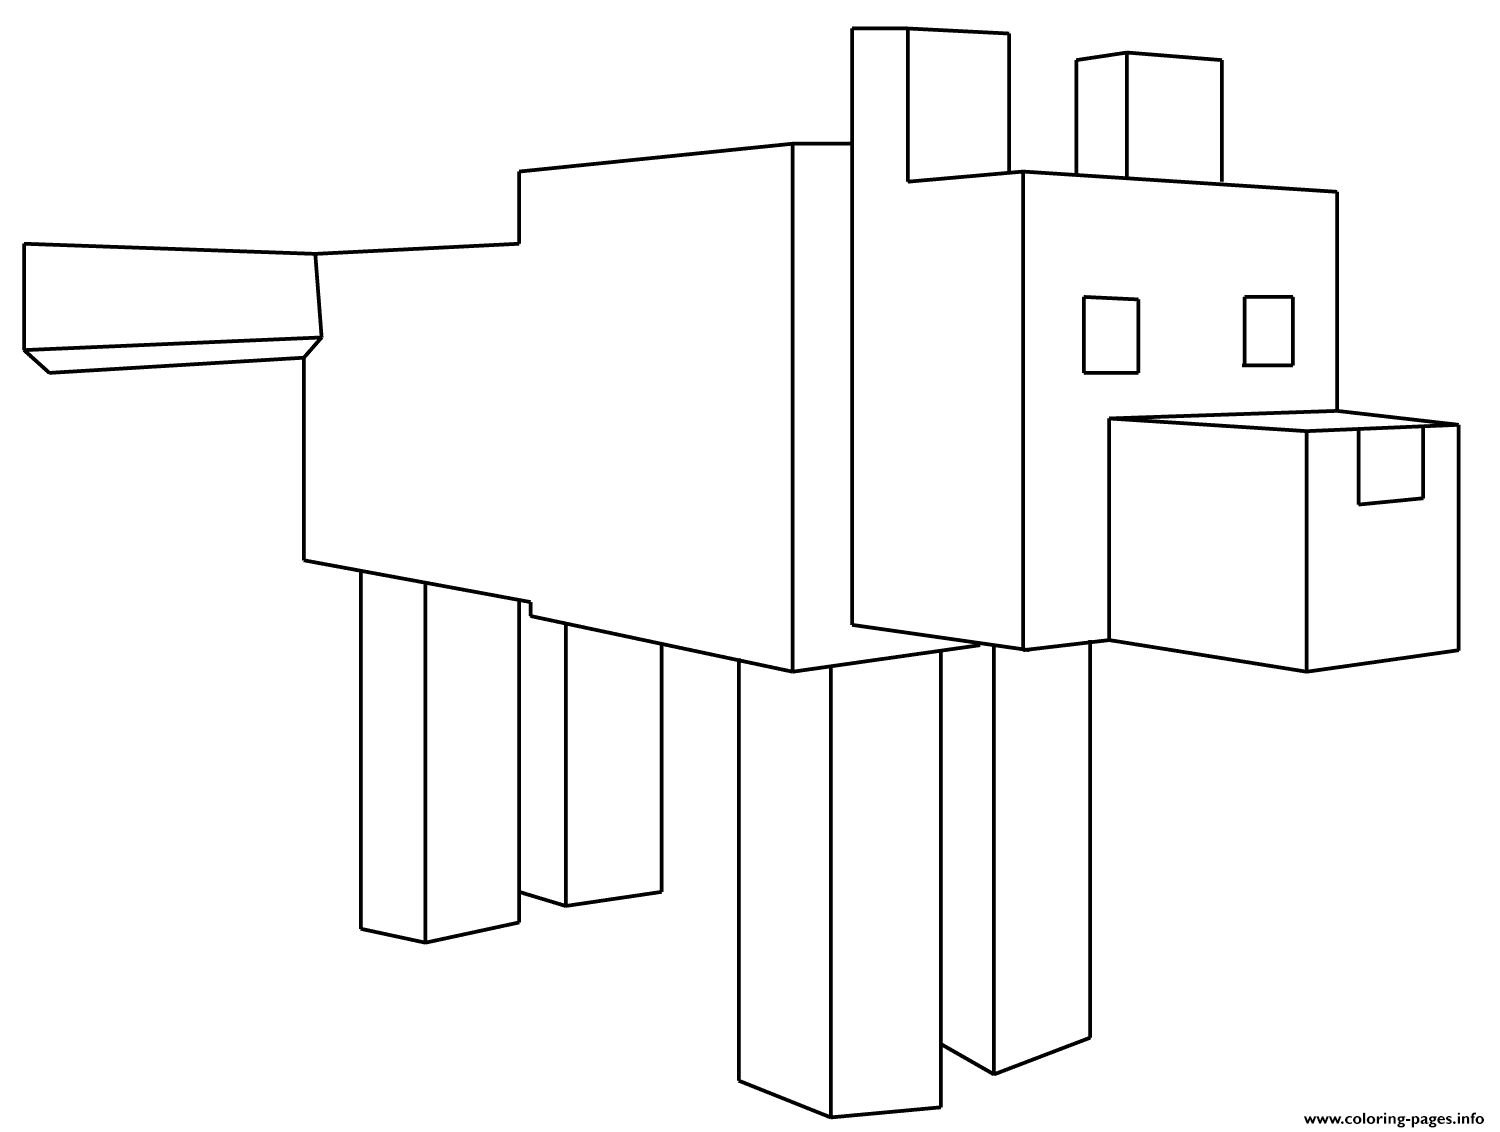 minecraft wolf coloring pages wire fence drawing at getdrawings free download pages minecraft wolf coloring